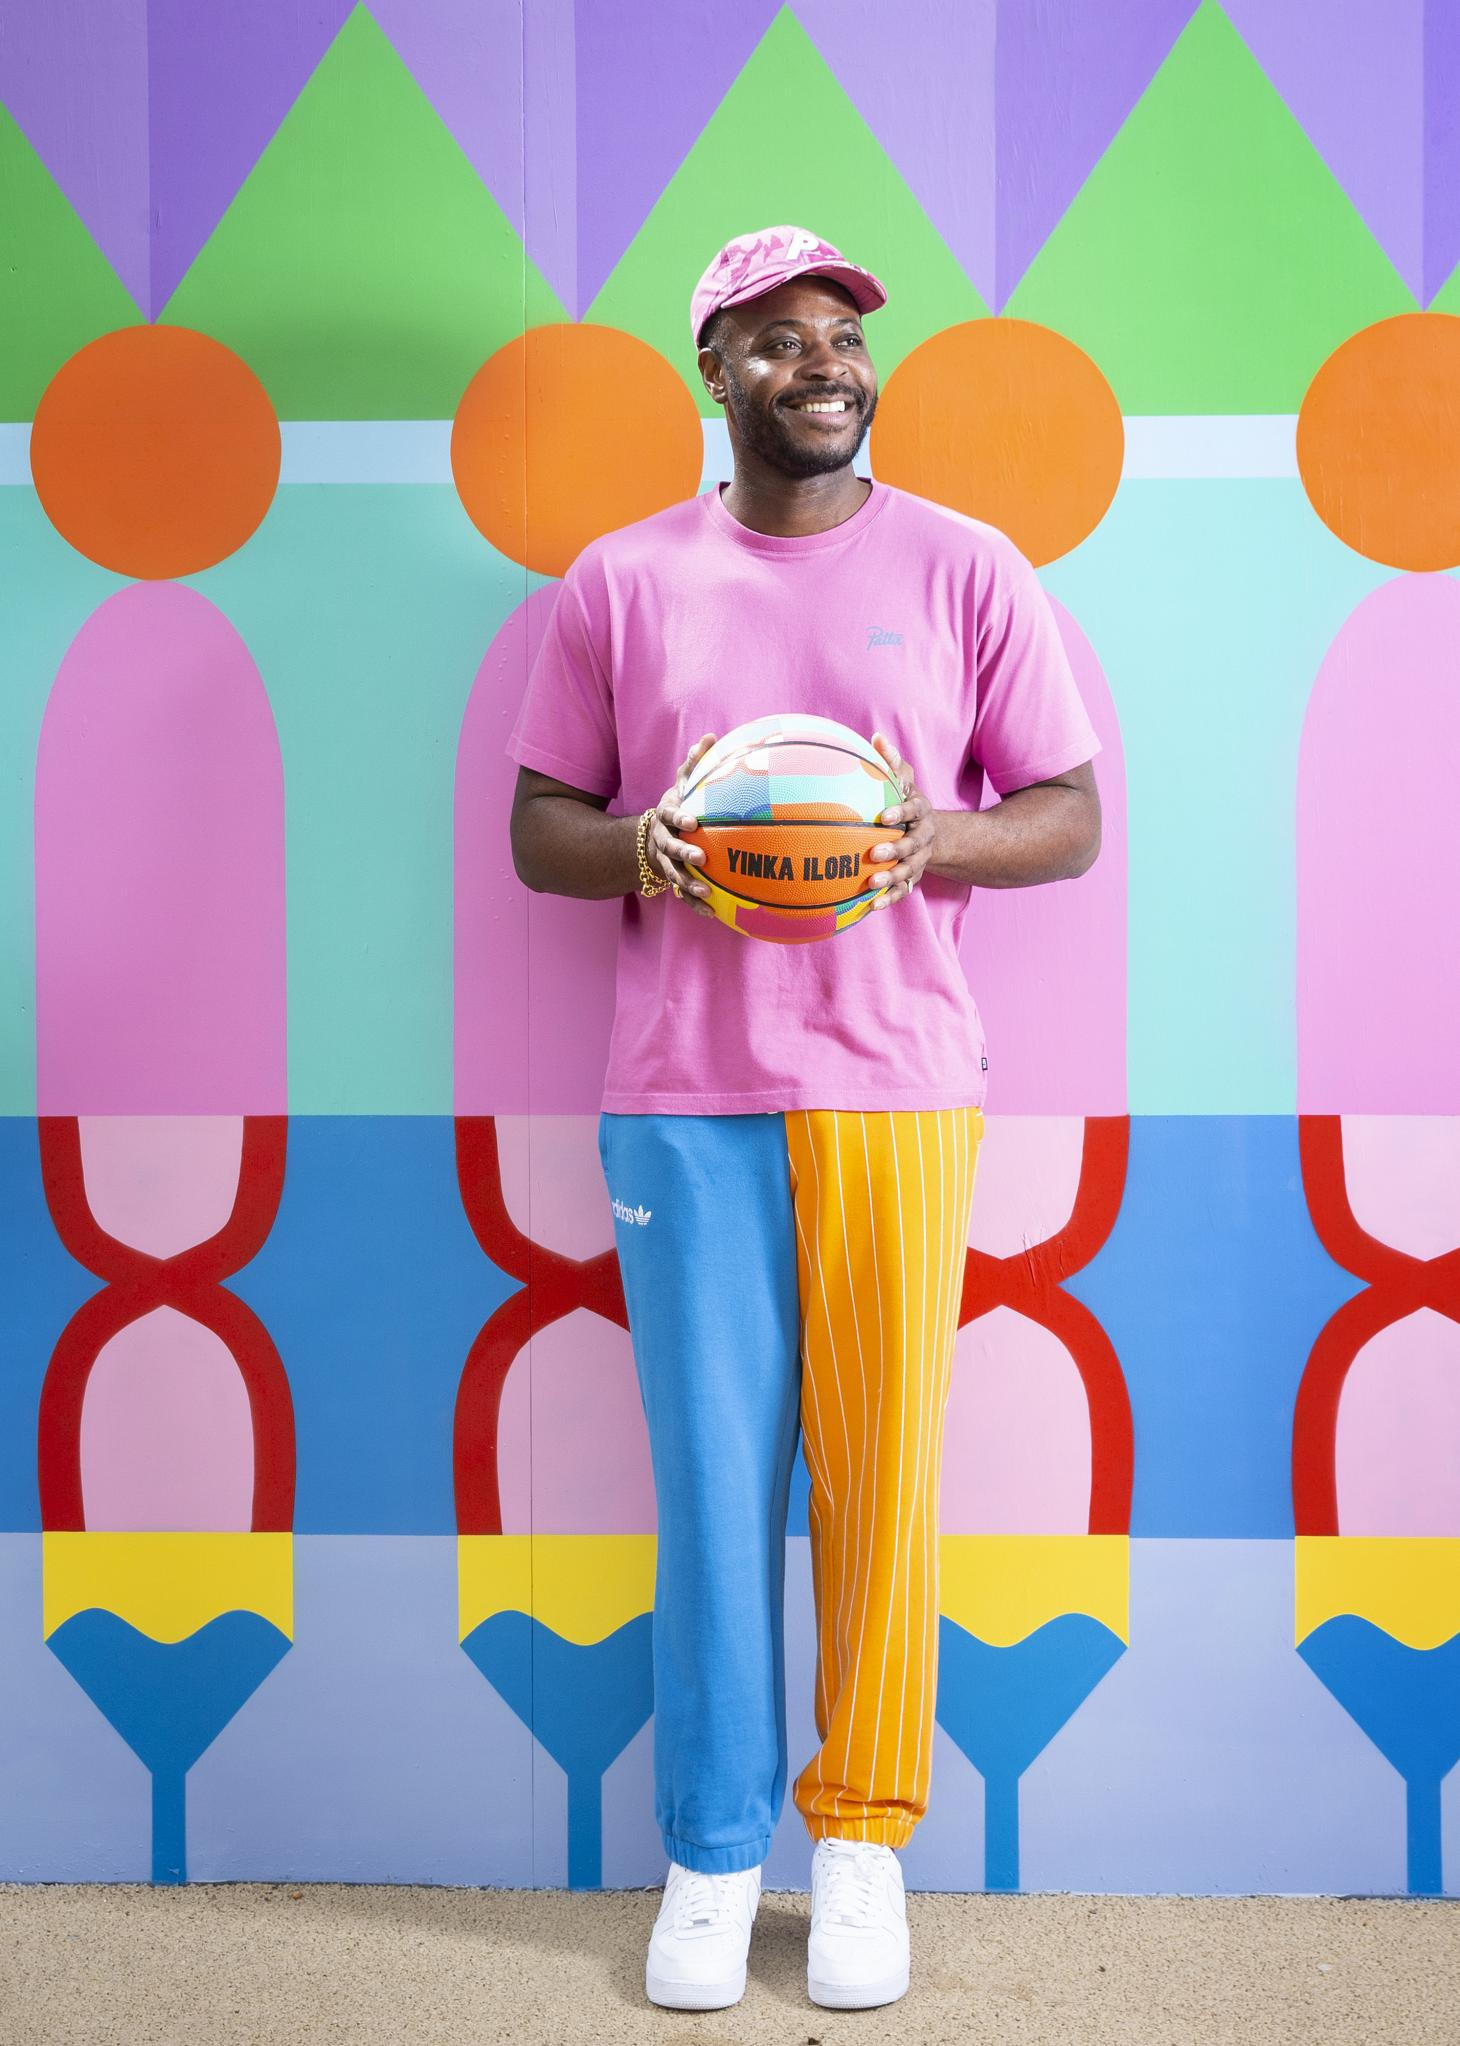 Yinka Ilori holding a colourful basketball at the basketball court he designed for London's Canary Wharf Estate, May 2021